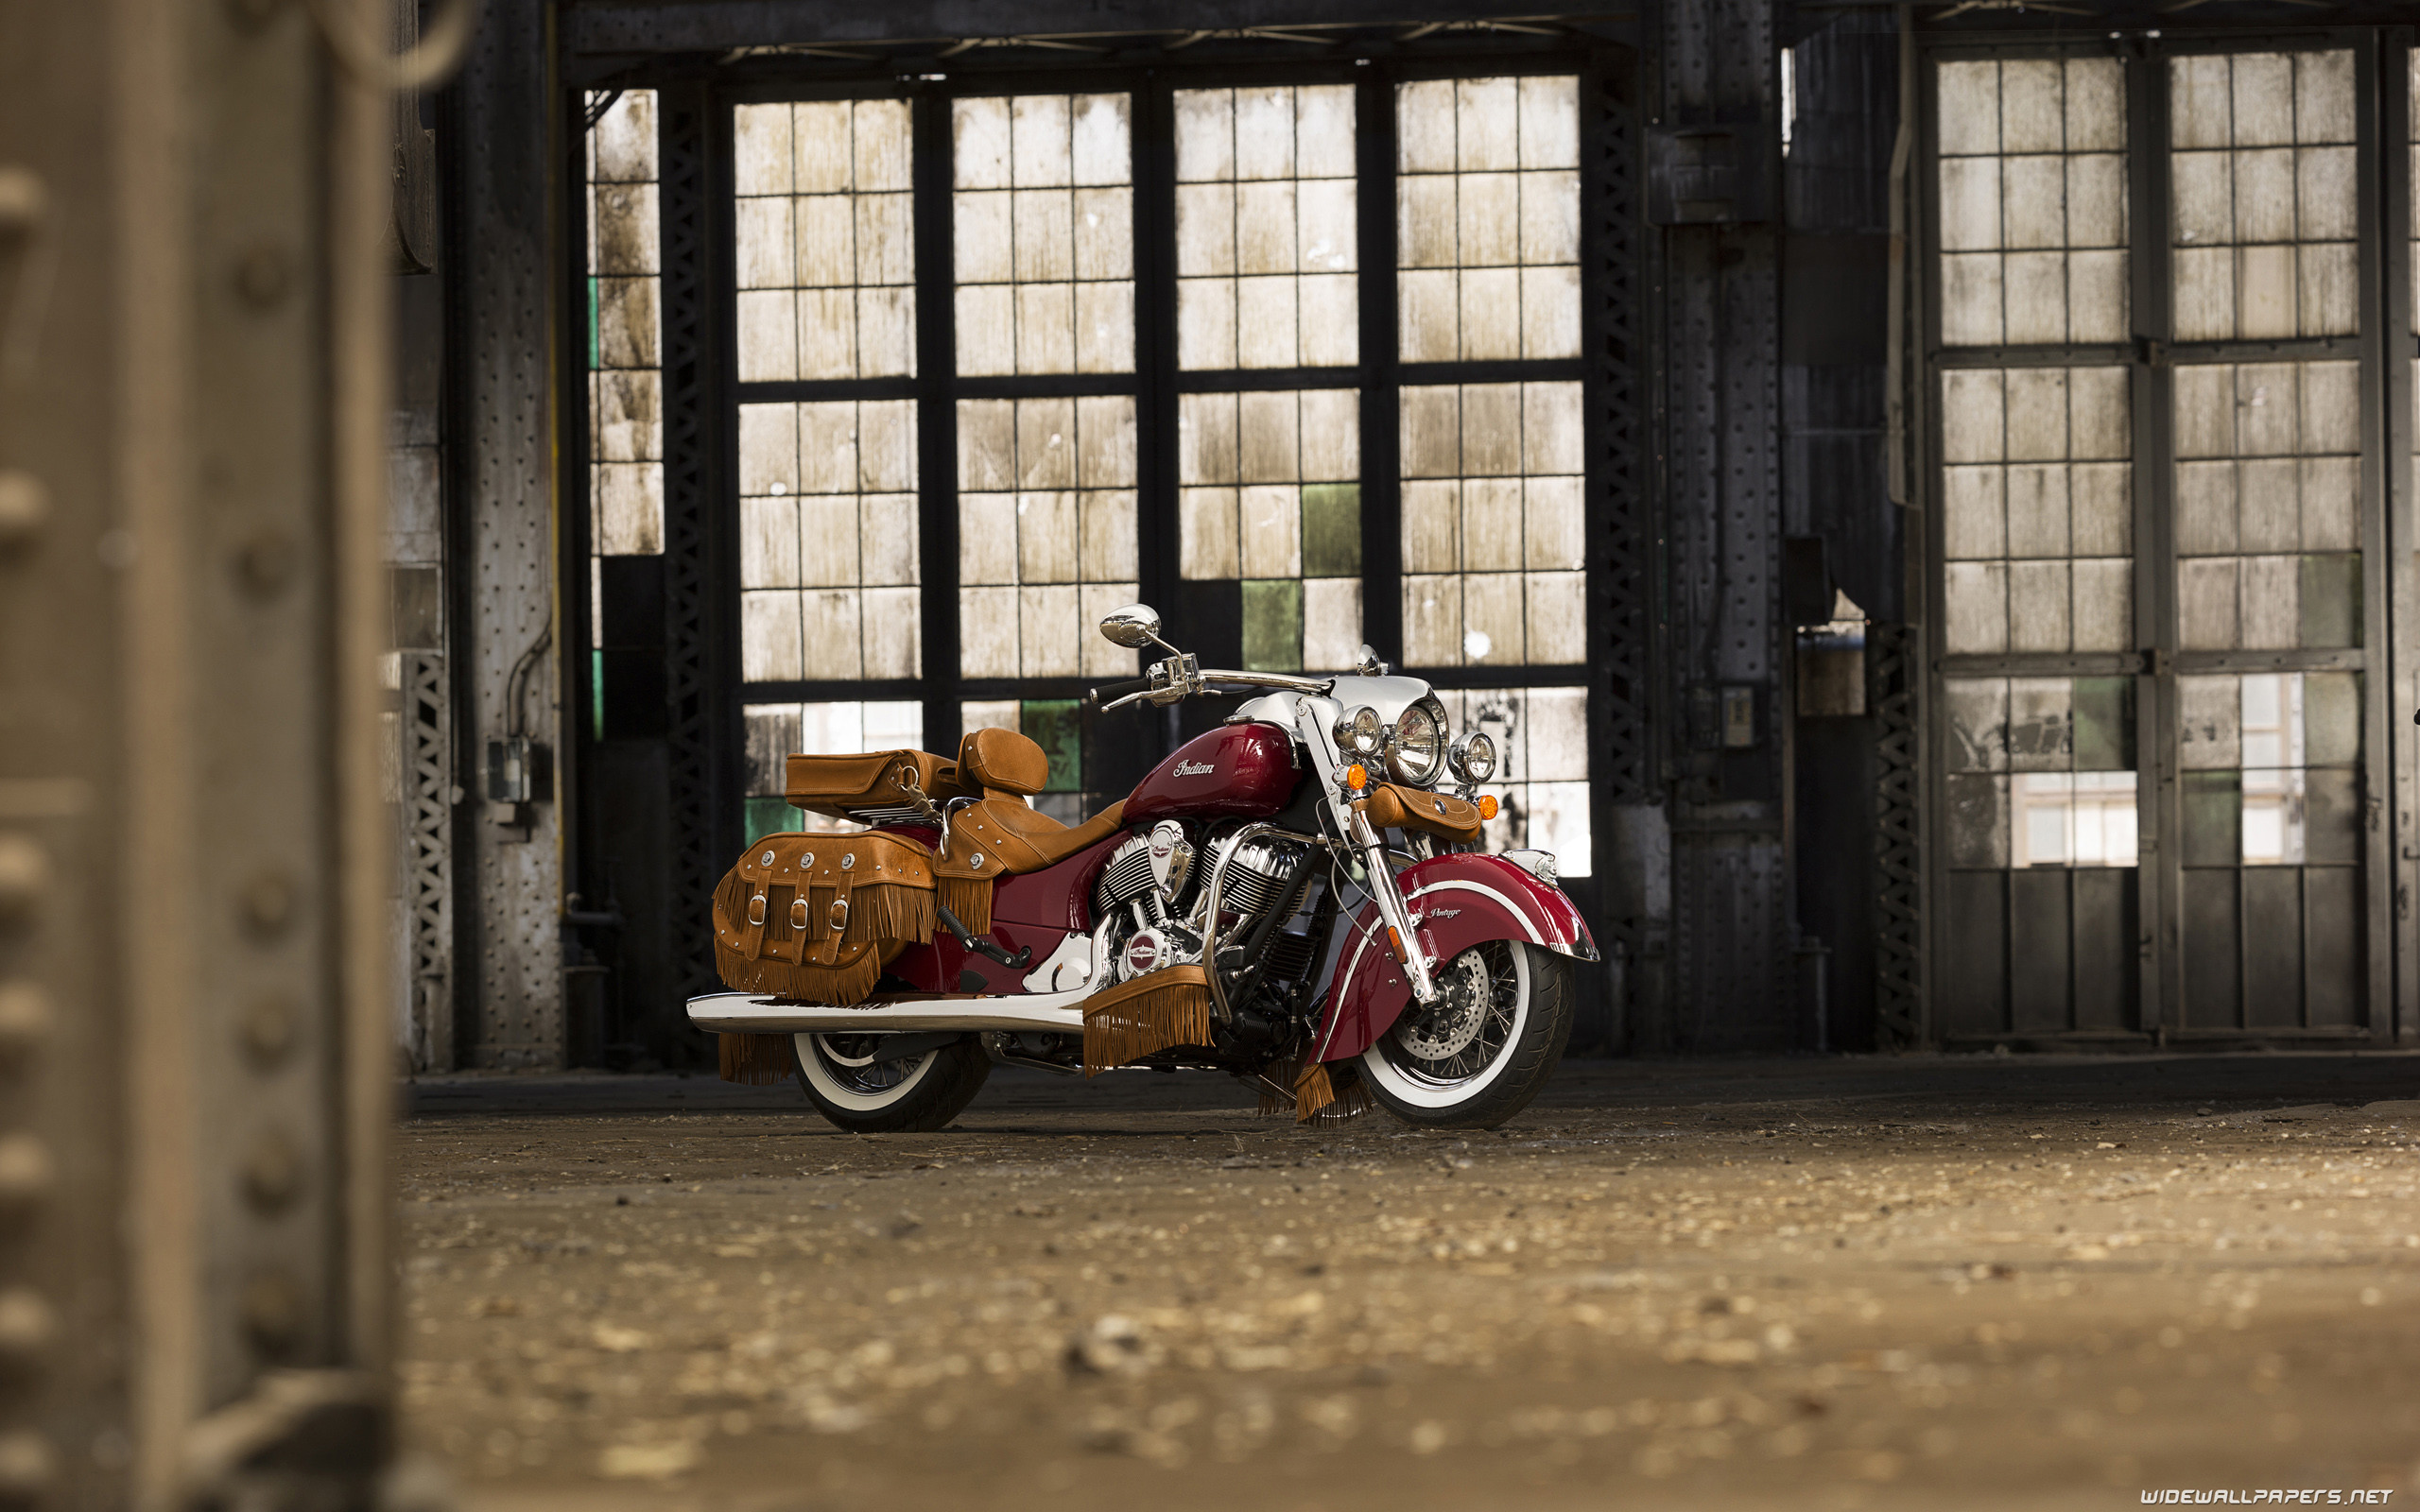 Res: 2560x1600, Indian Chief Vintage motorcycle 2560x1440  3840x2160